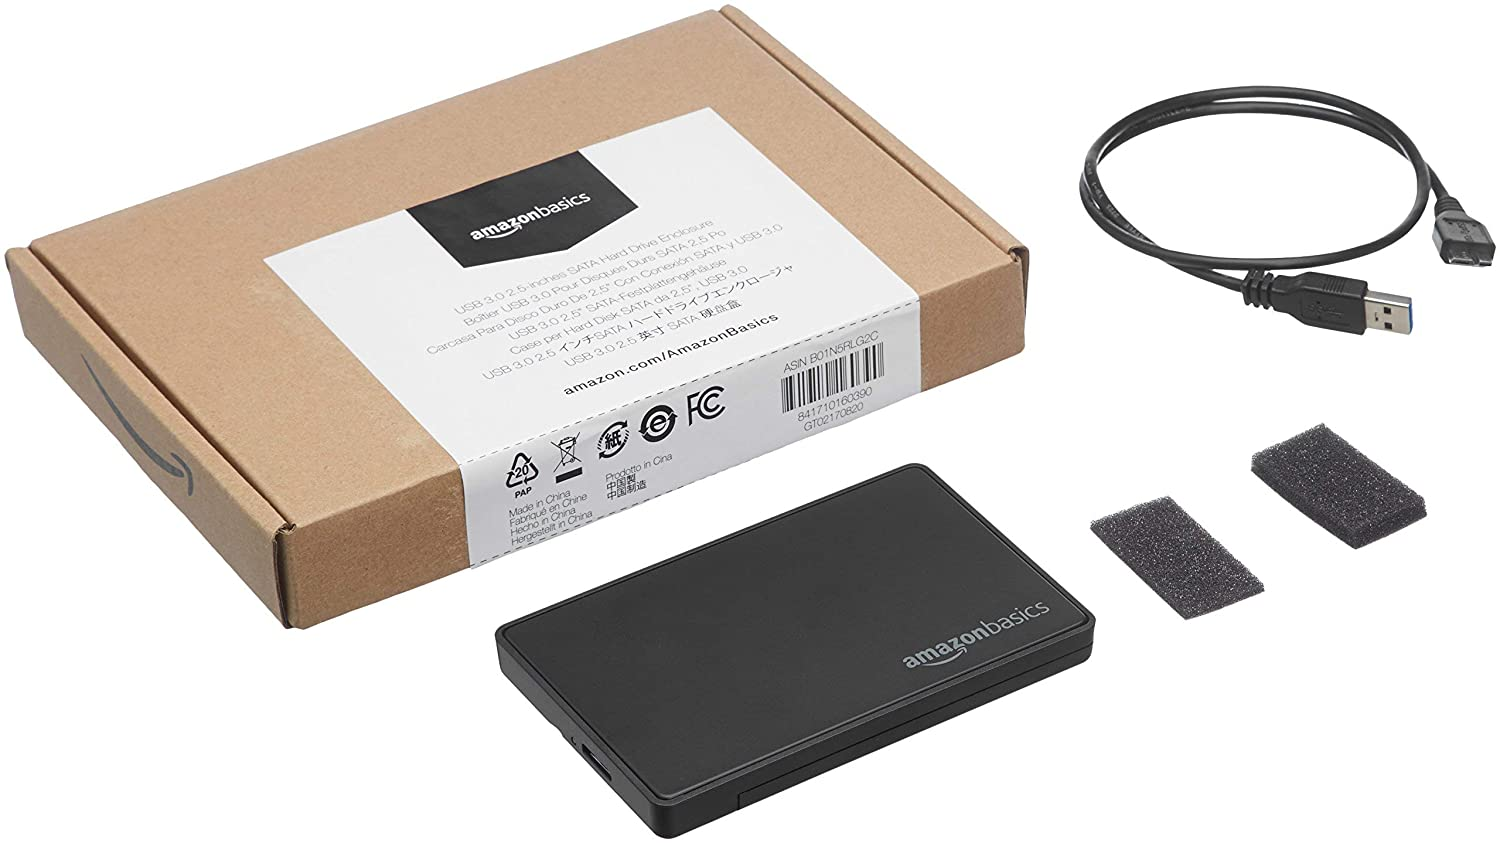 Amazon.com: AmazonBasics 3.5-inches SATA HDD Hard Drive ...